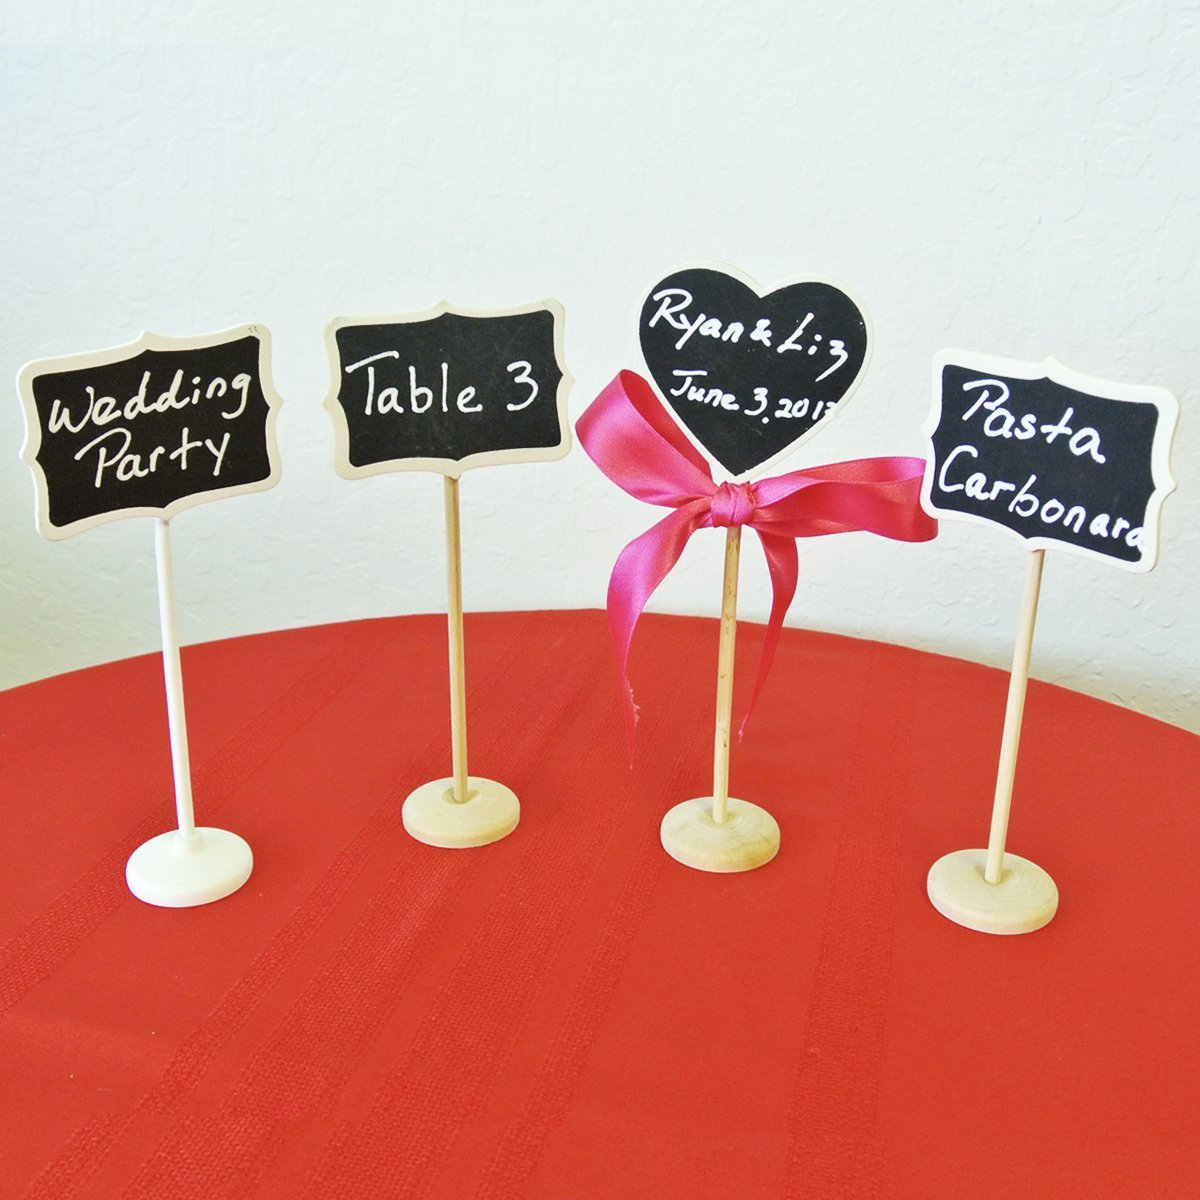 "Set of 8 Chalkboard Stands With Chalkboard Stickers, 3"" x 2.25"" Heart"